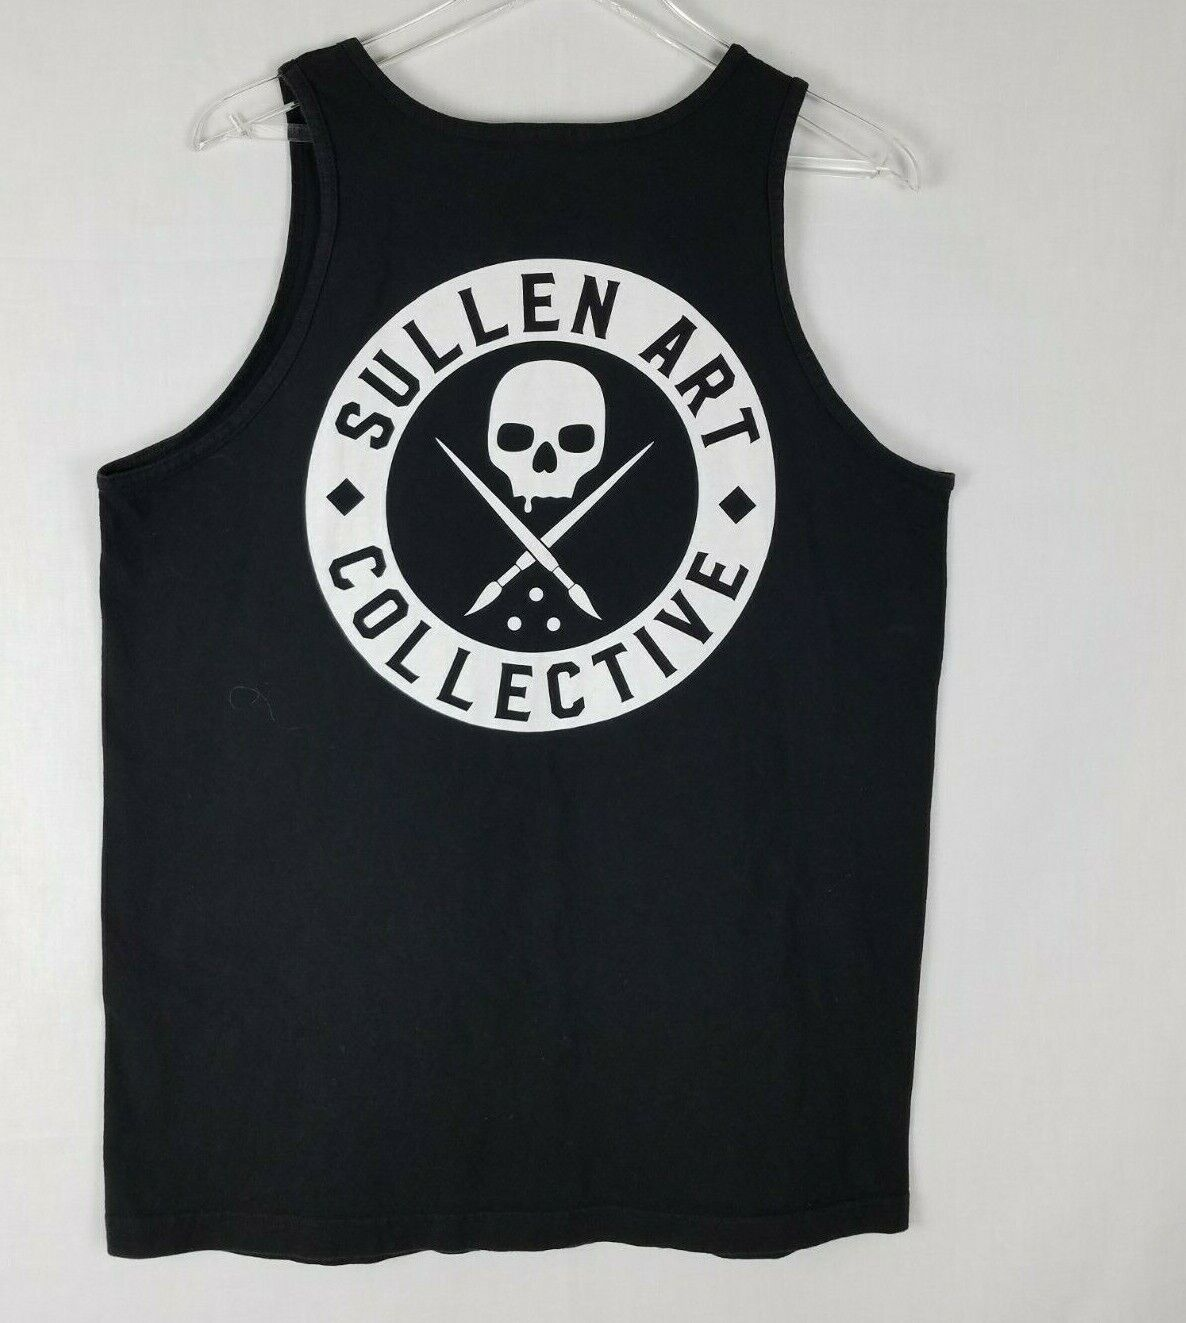 Sullen Art Collective Clothing Tank Top Getting Hammered Tattoo Skelett Haie